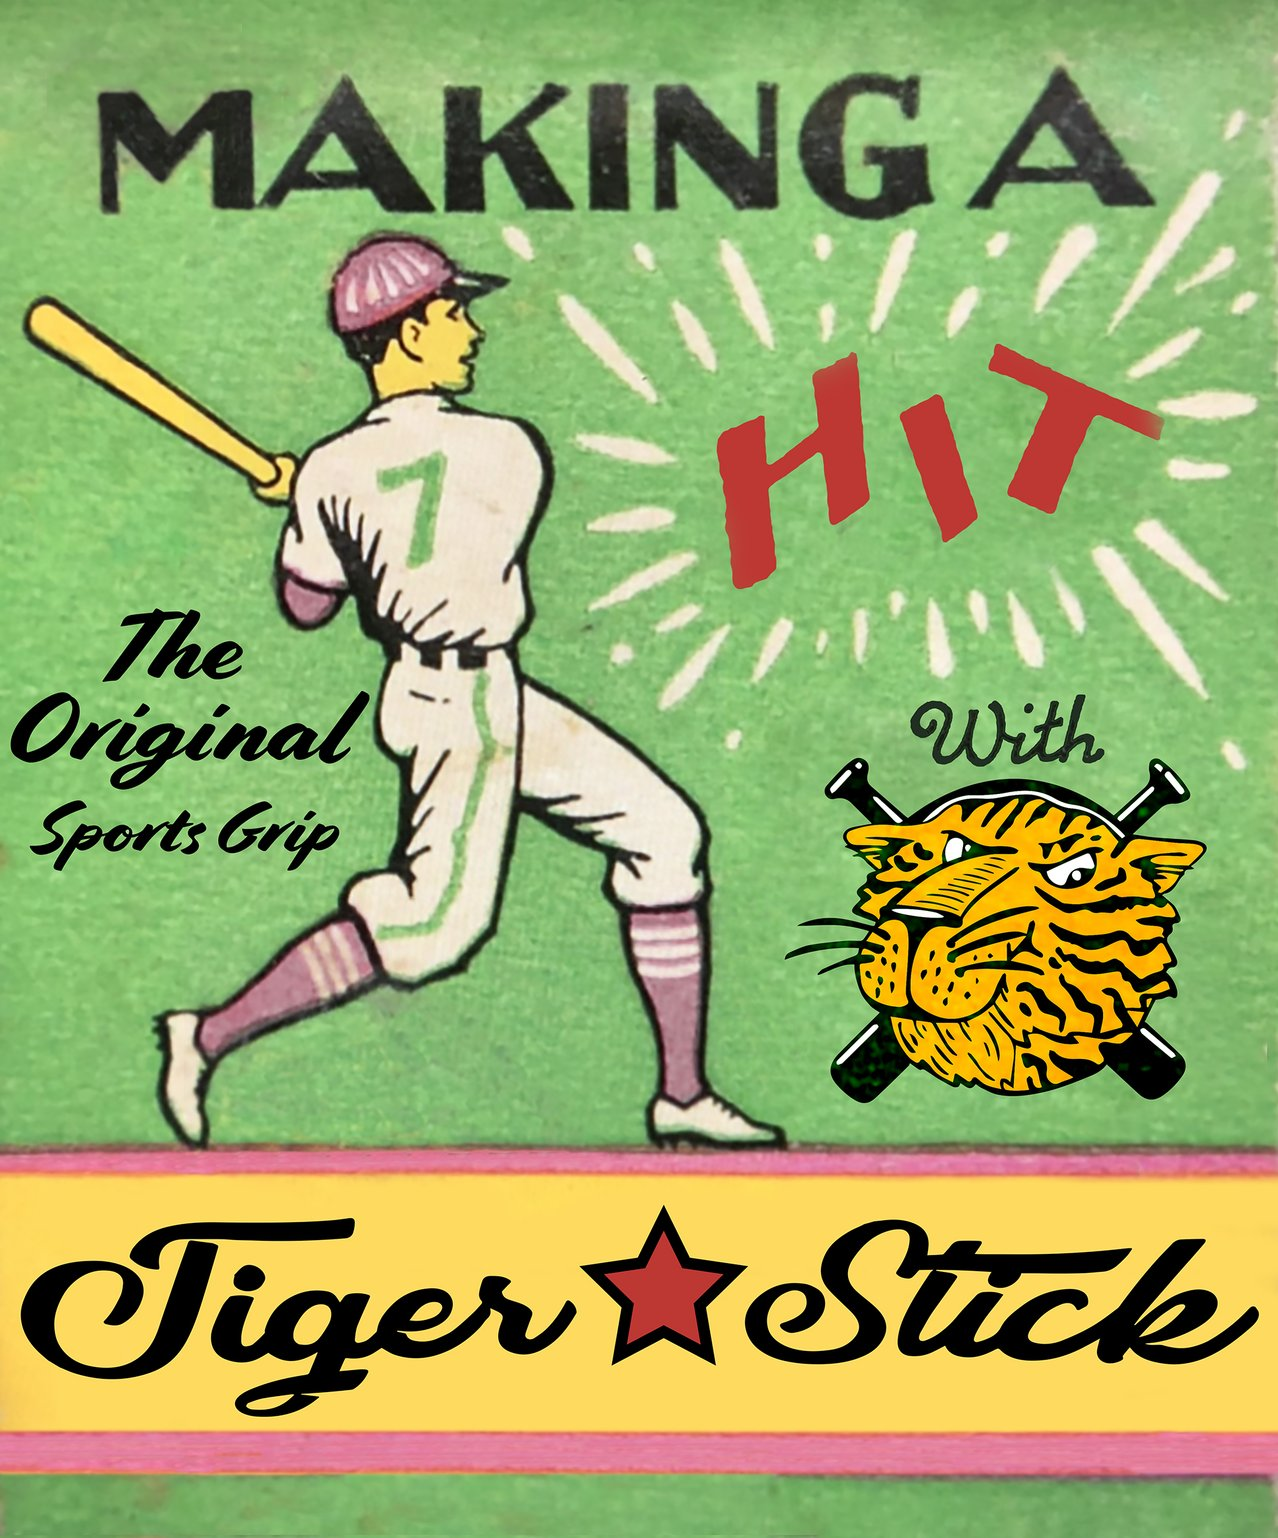 tiger stick bat wax baseball grip tiger stick angels mlb bat wax pine tar bat grip baseball